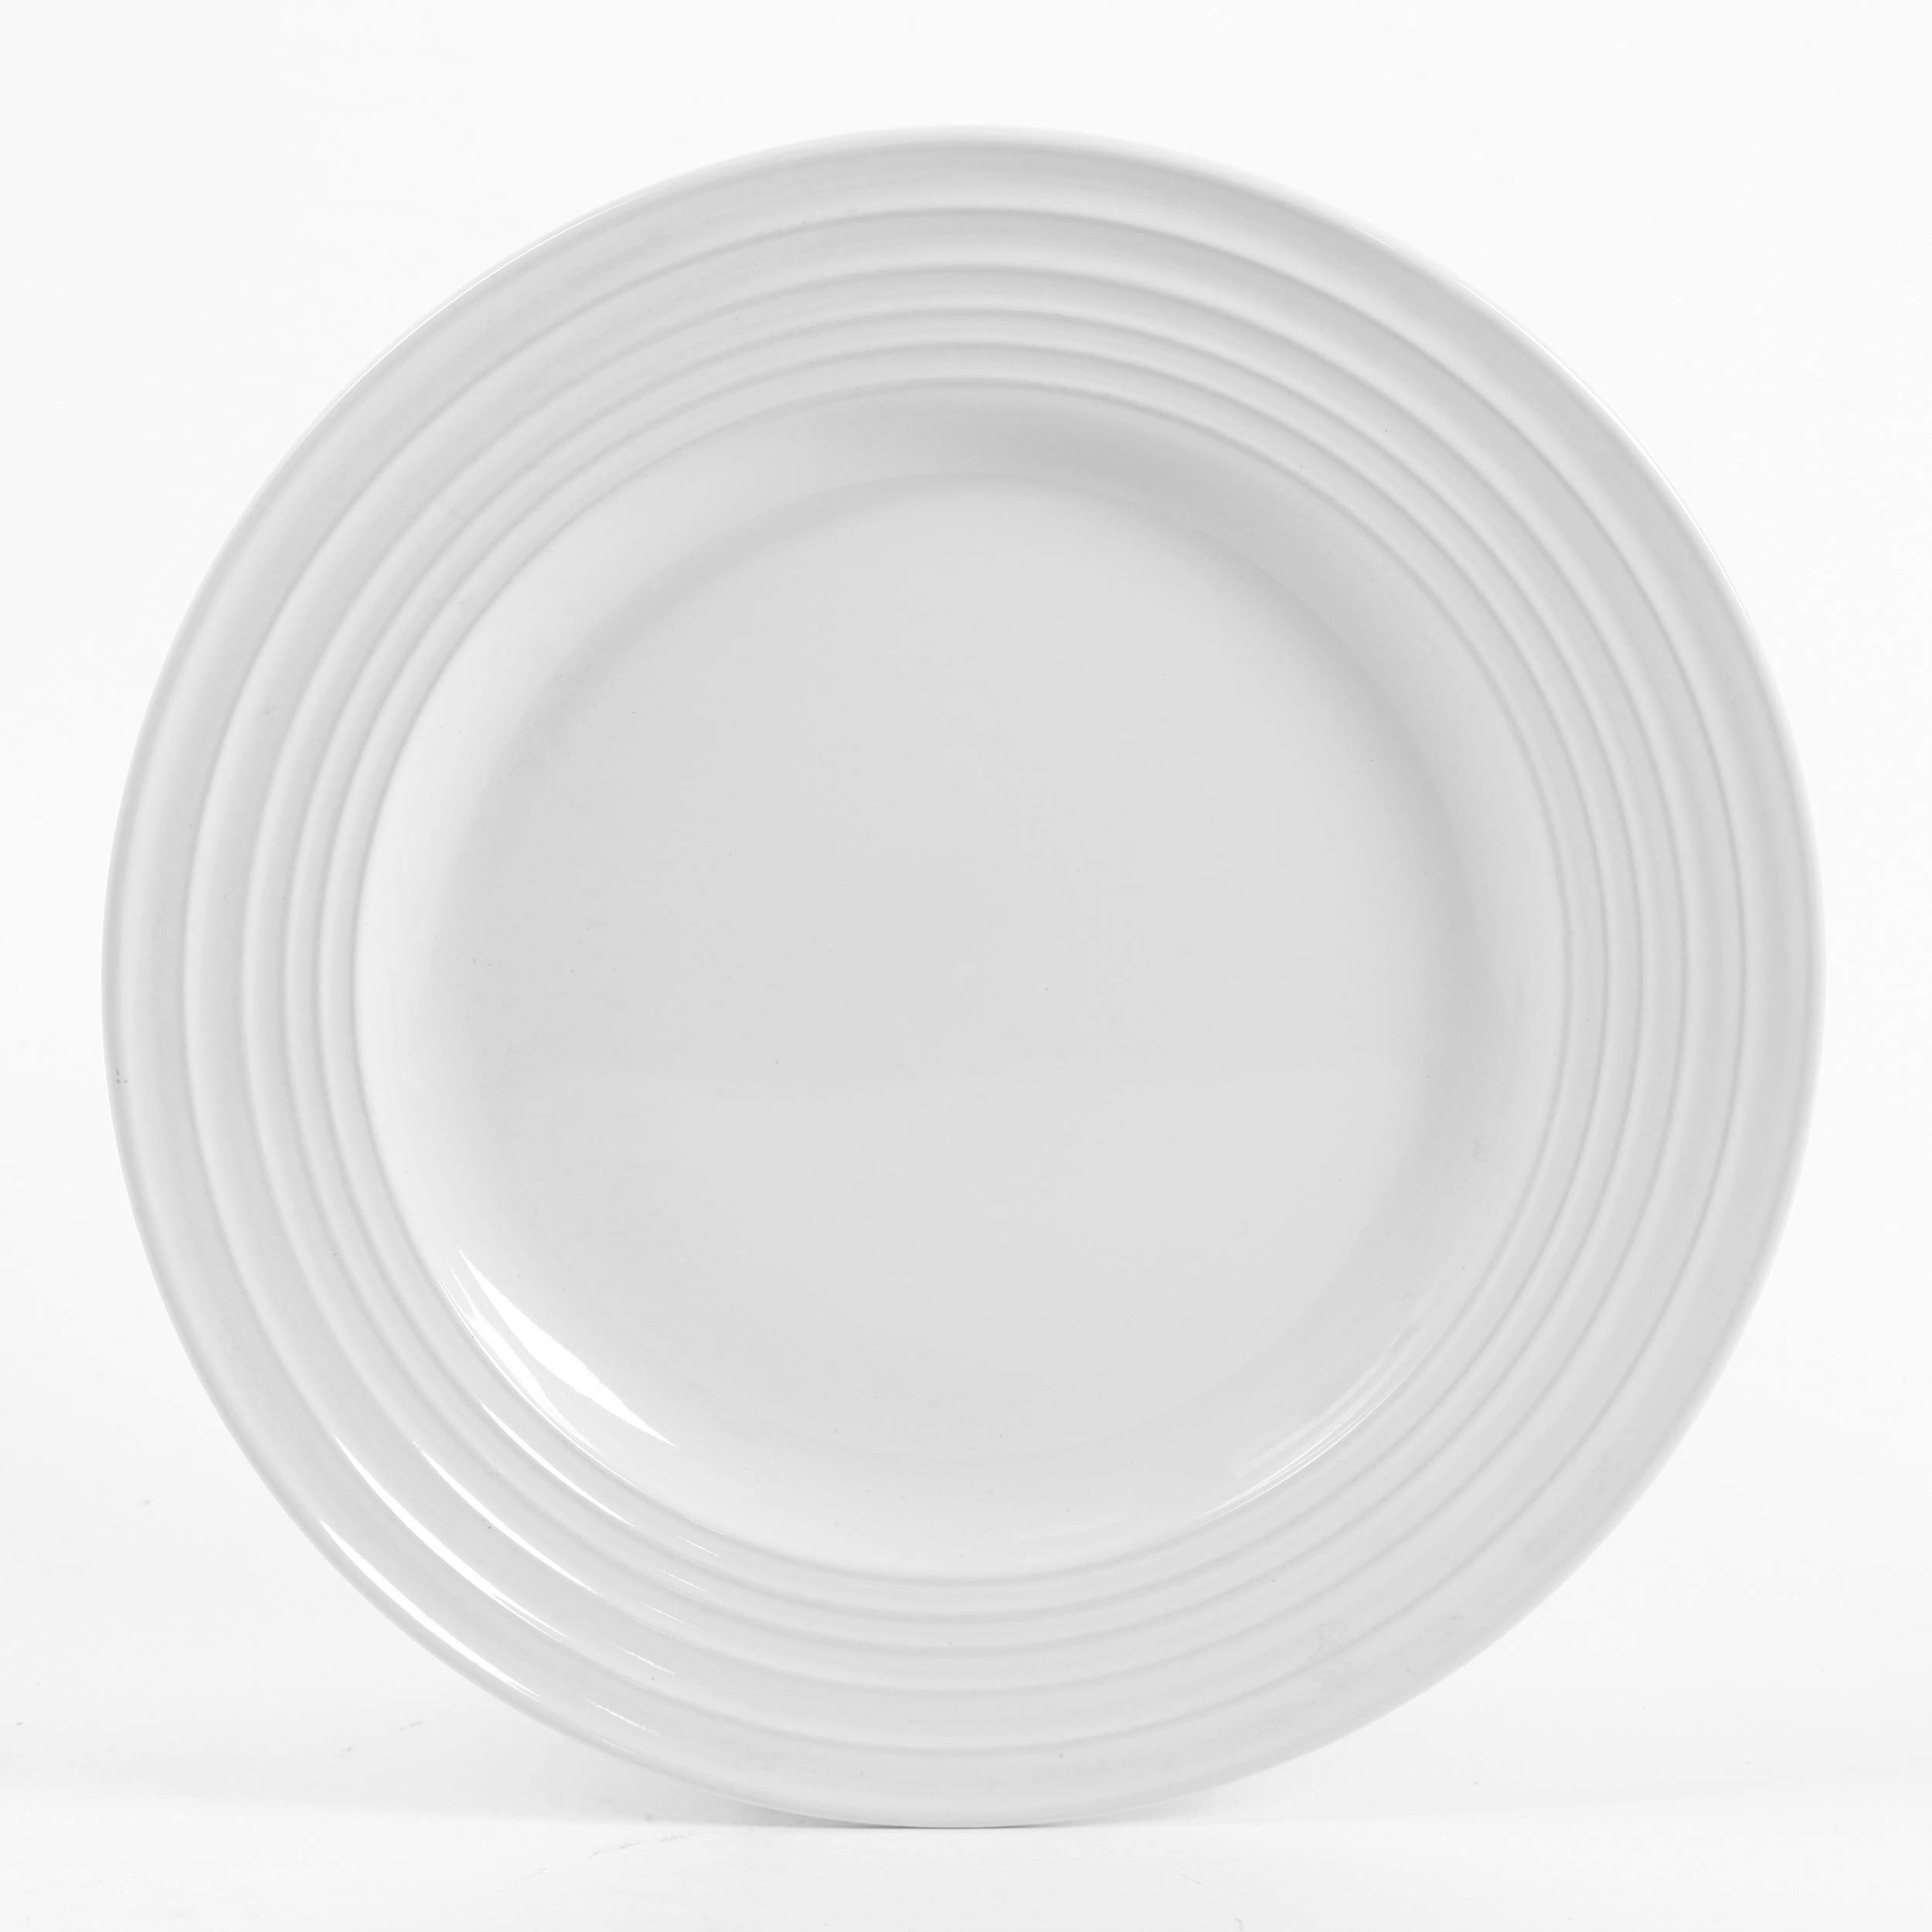 Gibson Home 12 Piece Plaza Cafe Round Dinnerware Set with Embossed Stoneware, White by Gibson Home (Image #4)